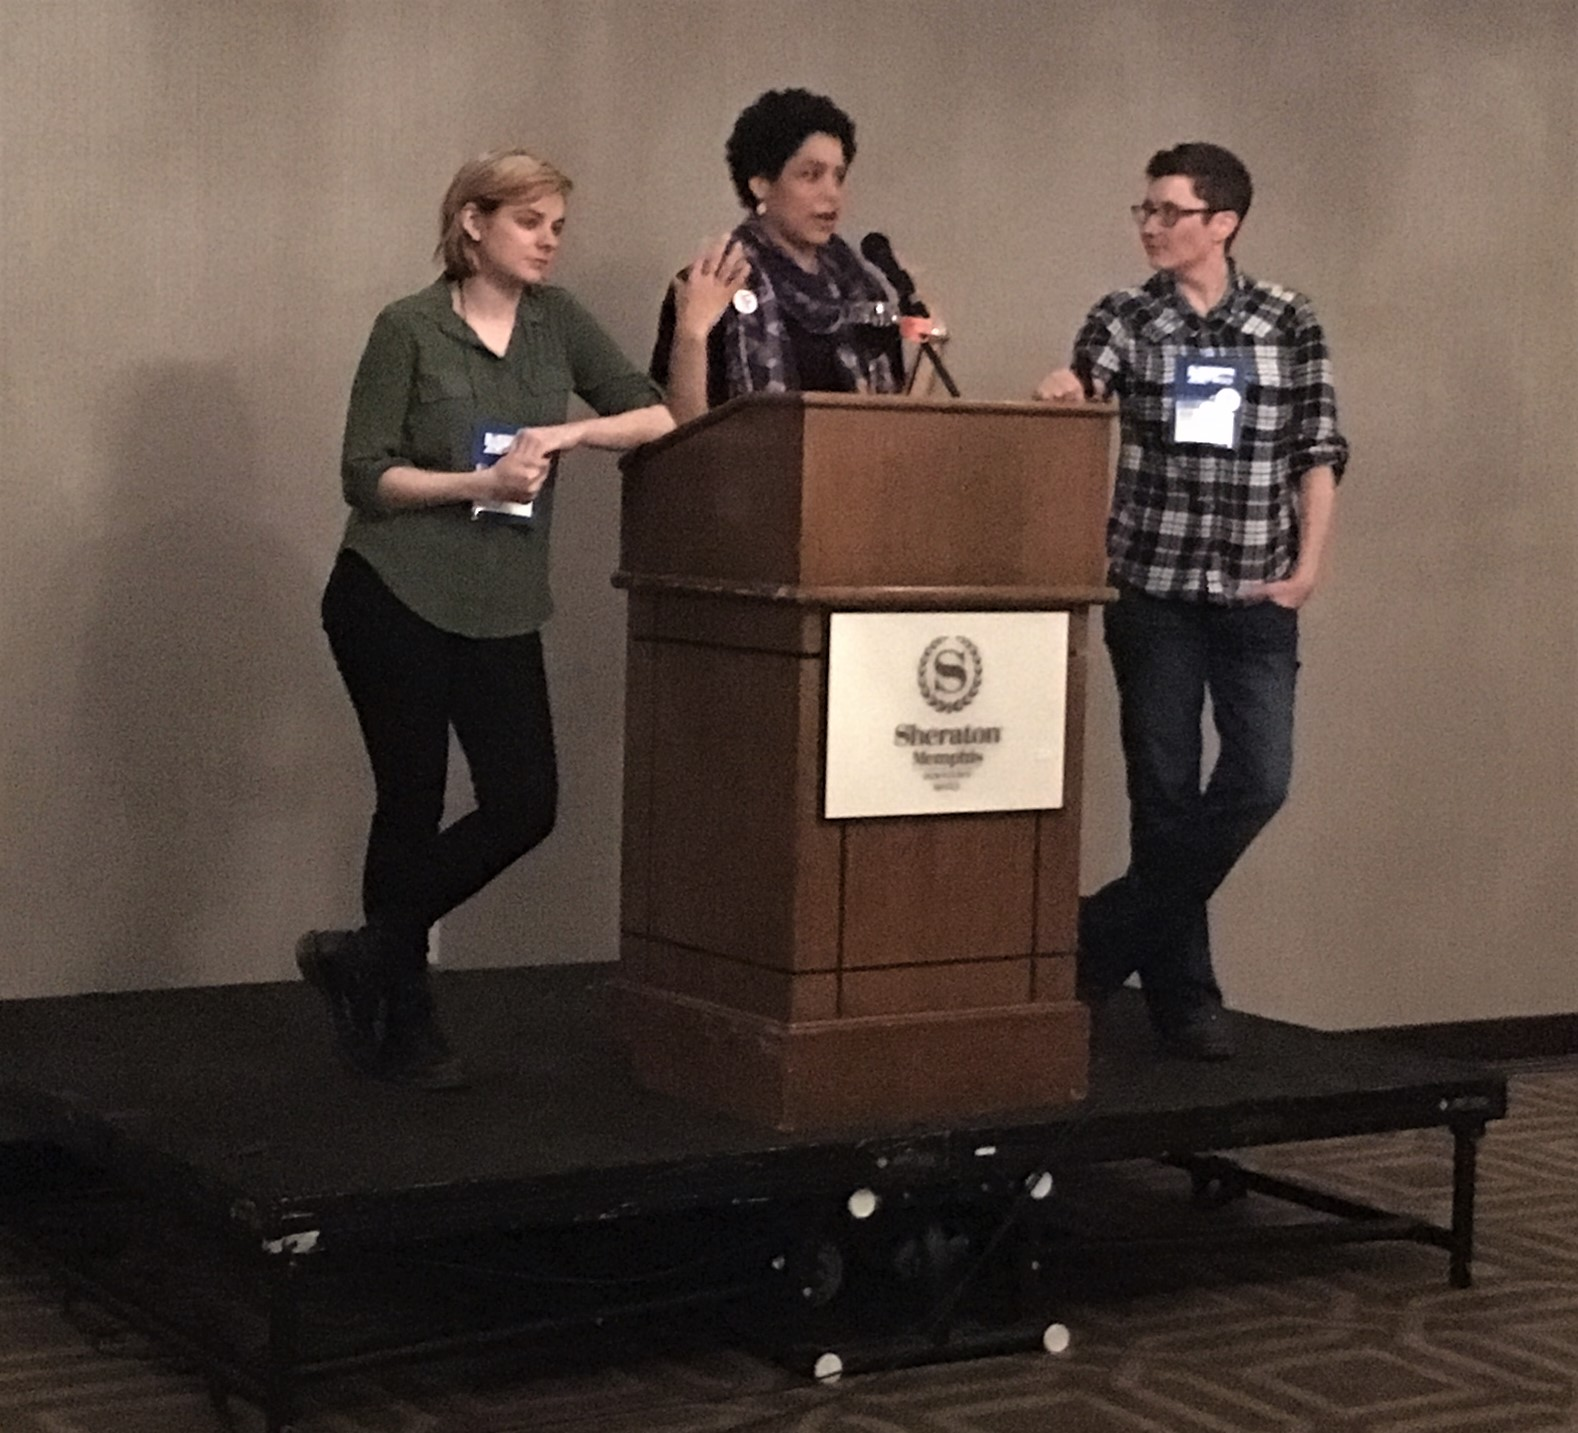 Emma Nichols, Hannah Oliver Depp, and Kim Hooyboer welcome young and new booksellers.